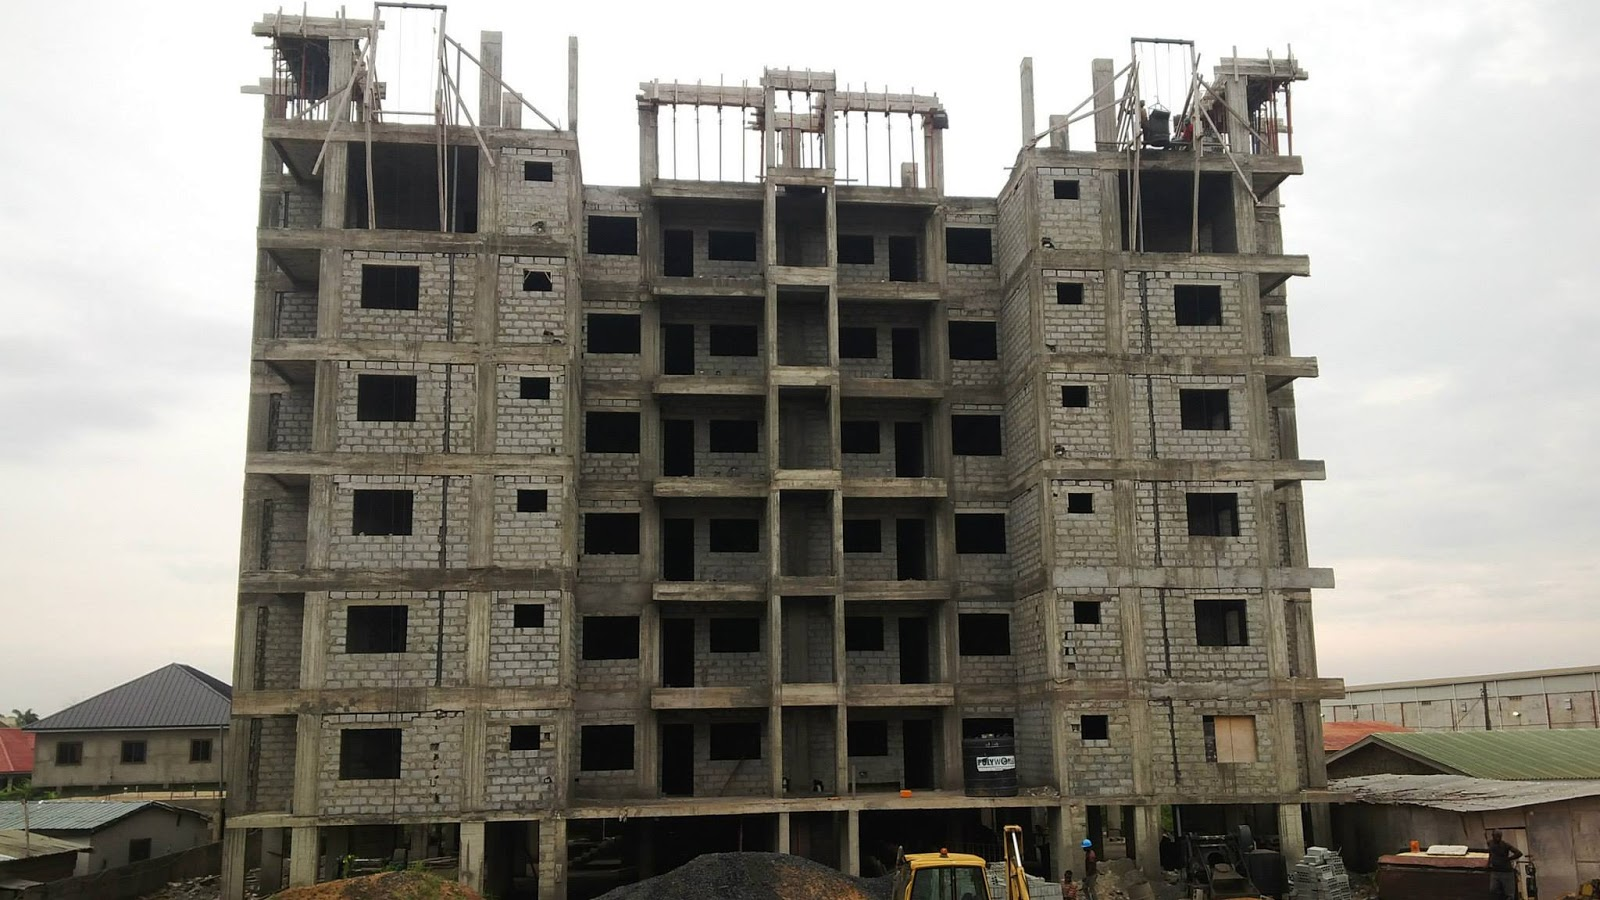 BY DECEMBER 2014) 56 MODERN AFFORDABLE (3 BEDROOM) APARTMENTS ...